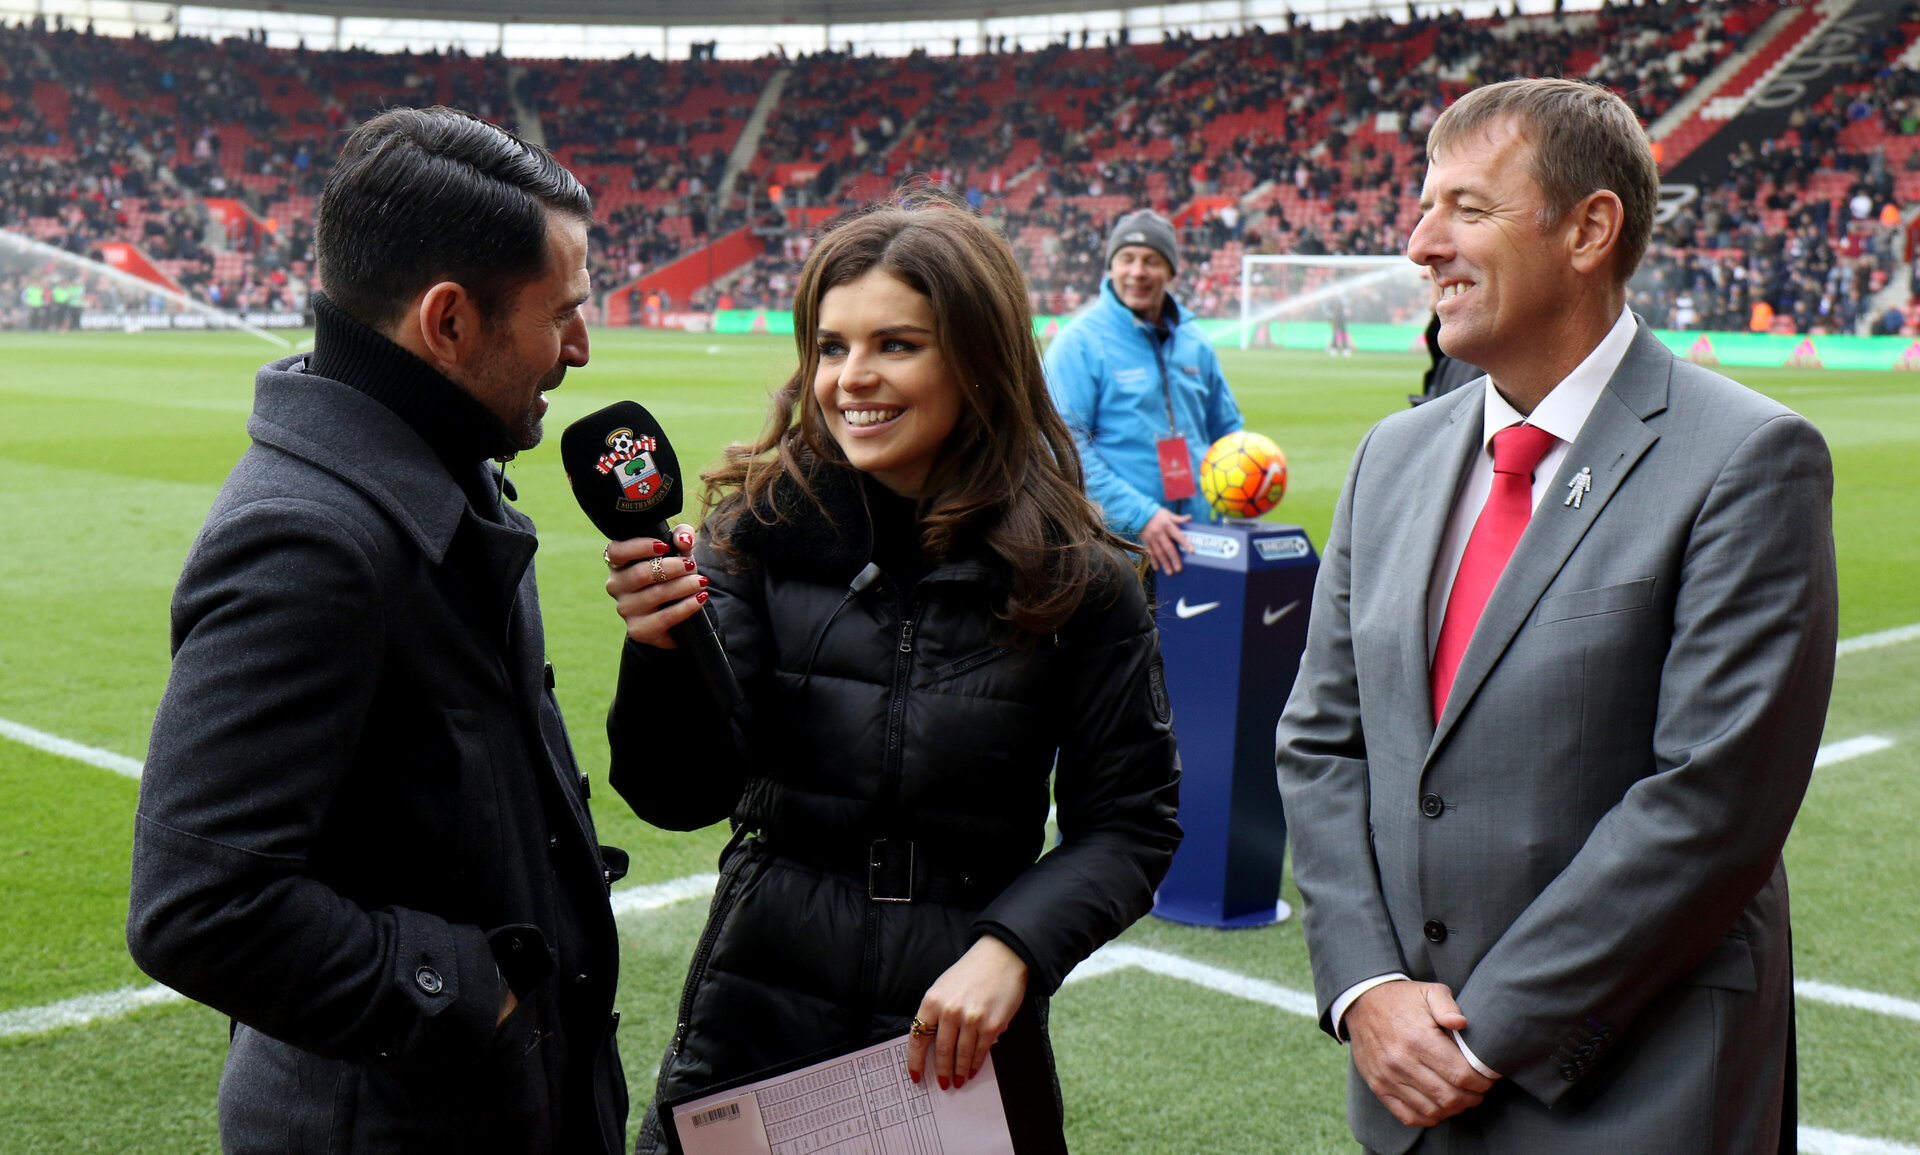 Francis Benali, Kenzie Benali and Matt Le Tissier during the Barclays Premier League match between Southampton and Chelsea at St Mary's Stadium, Southampton, England on 27 February 2016.